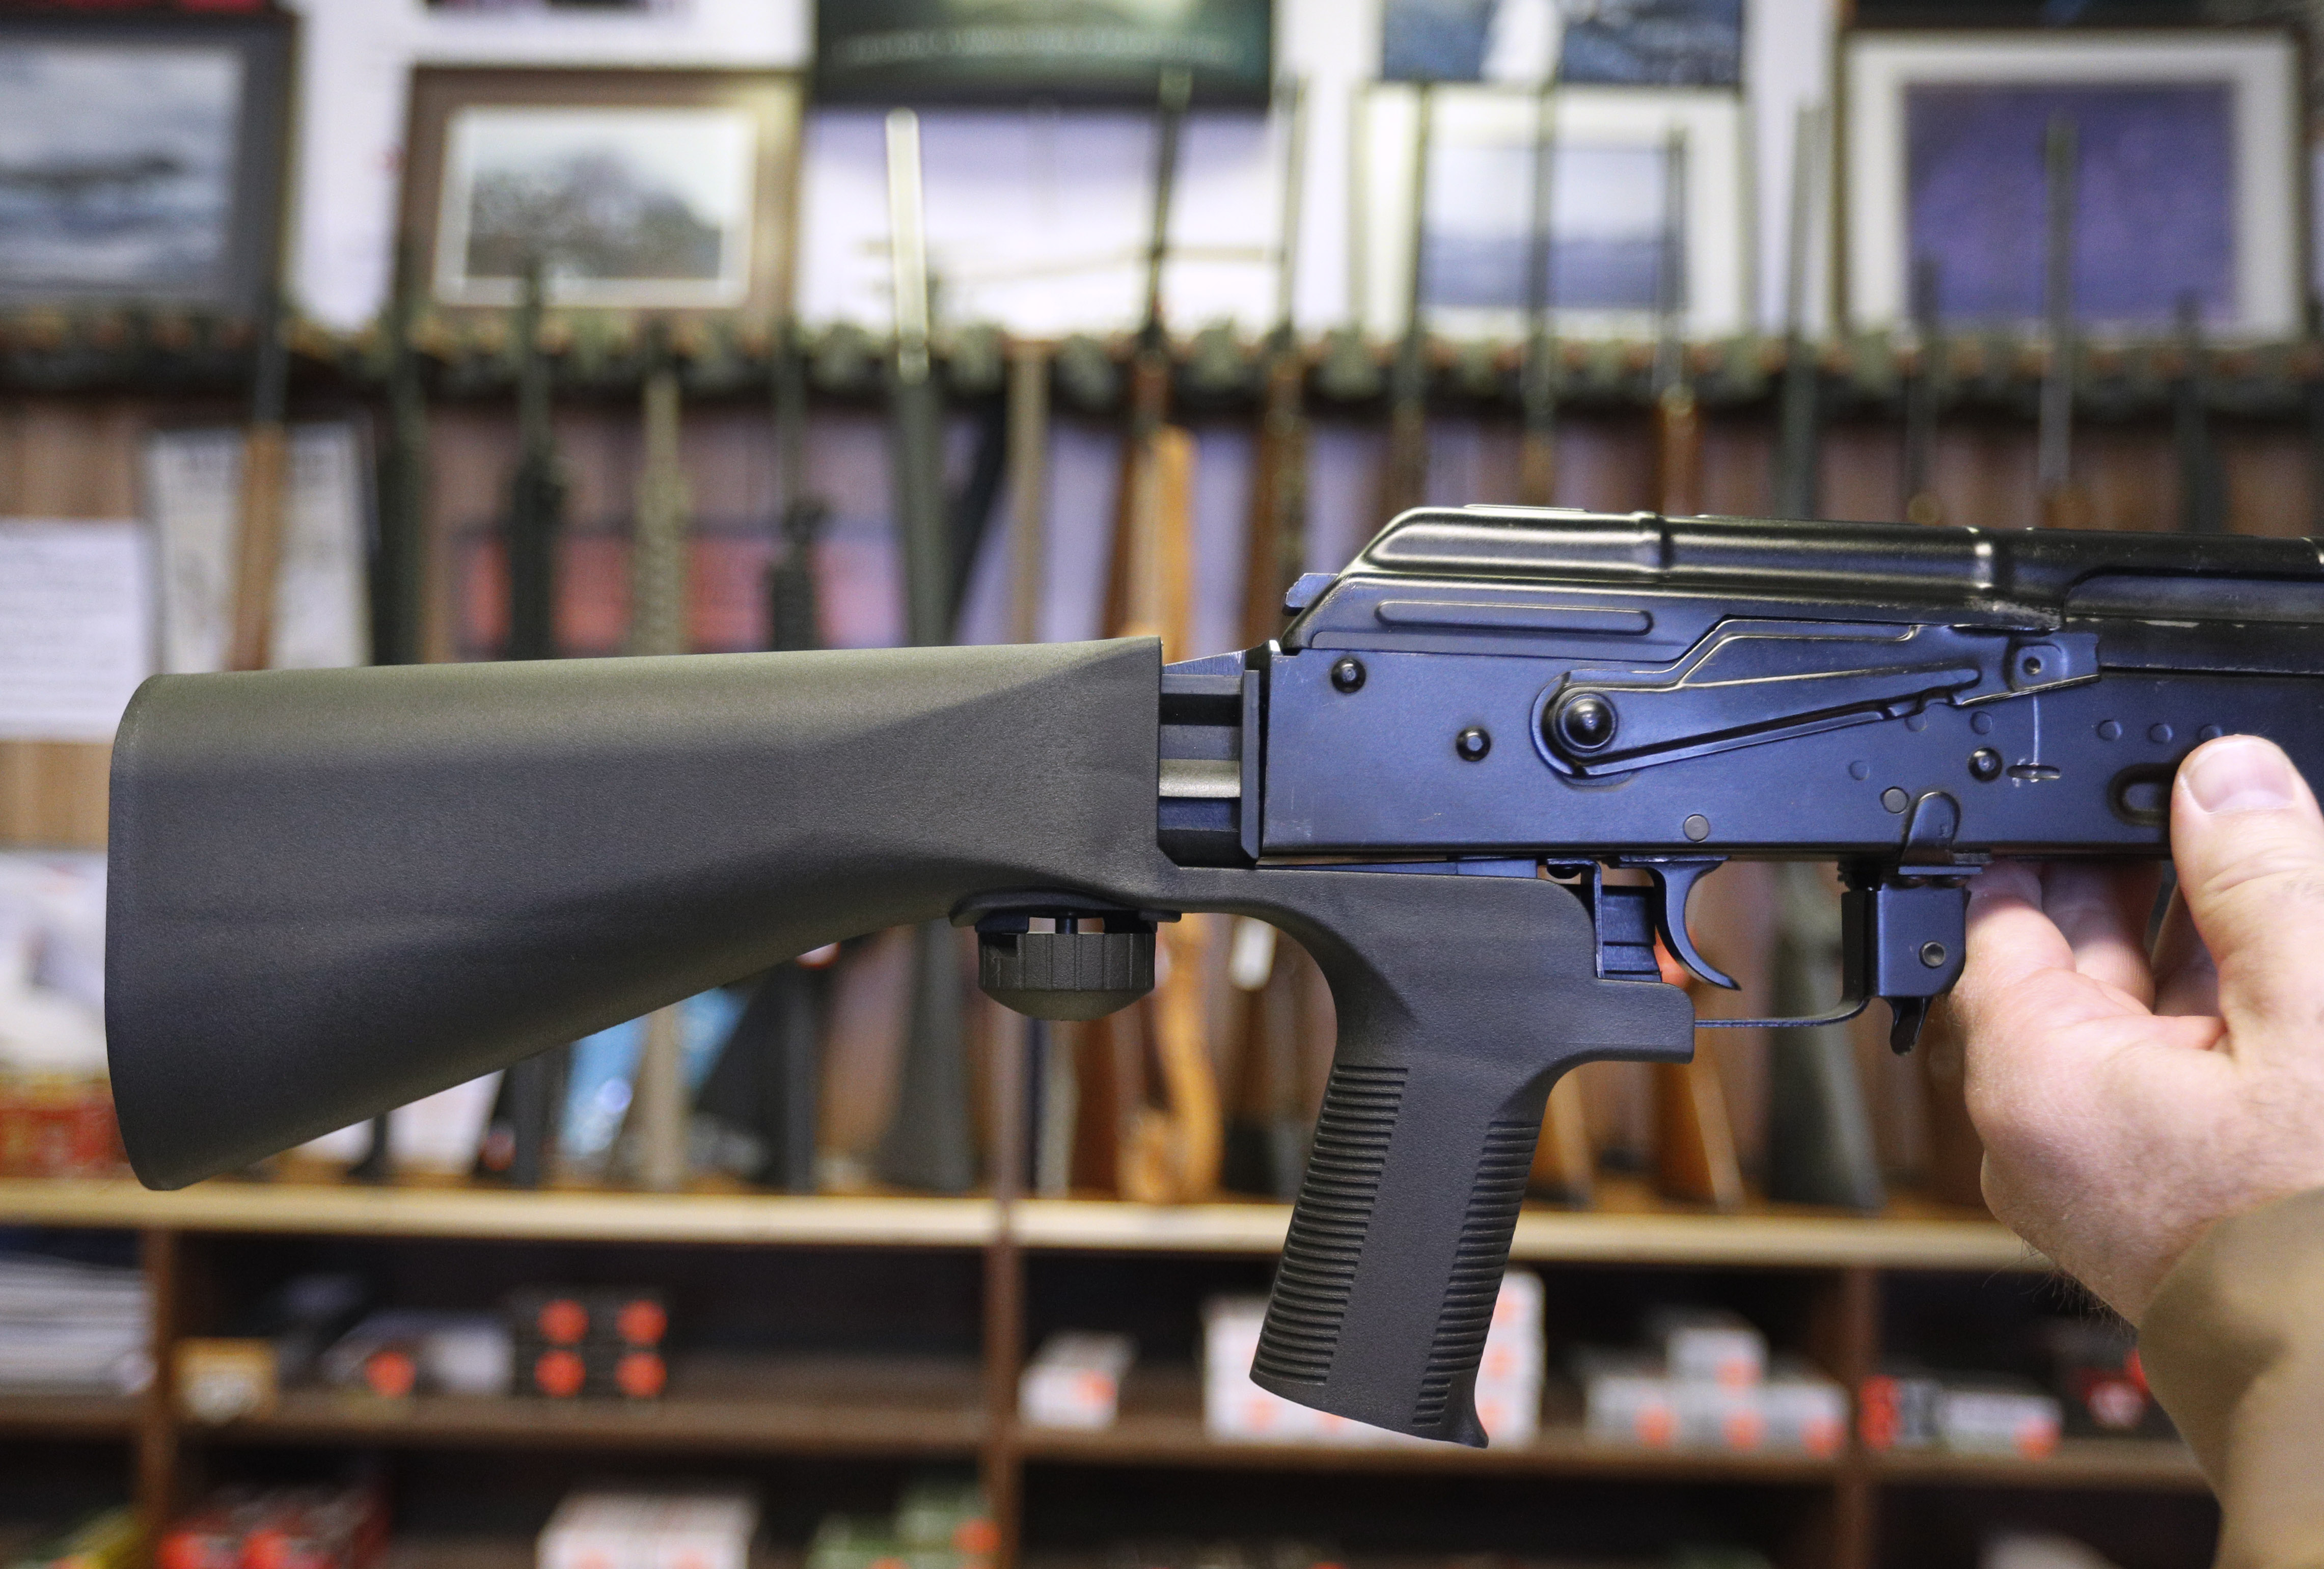 A bump stock device (left) that fits on a semi-automatic rifle to increase the firing speed, making it similar to a fully automatic rifle, is installed on a AK-47 semi-automatic rifle at a gun store on October 5, 2017 in Salt Lake City, Utah.